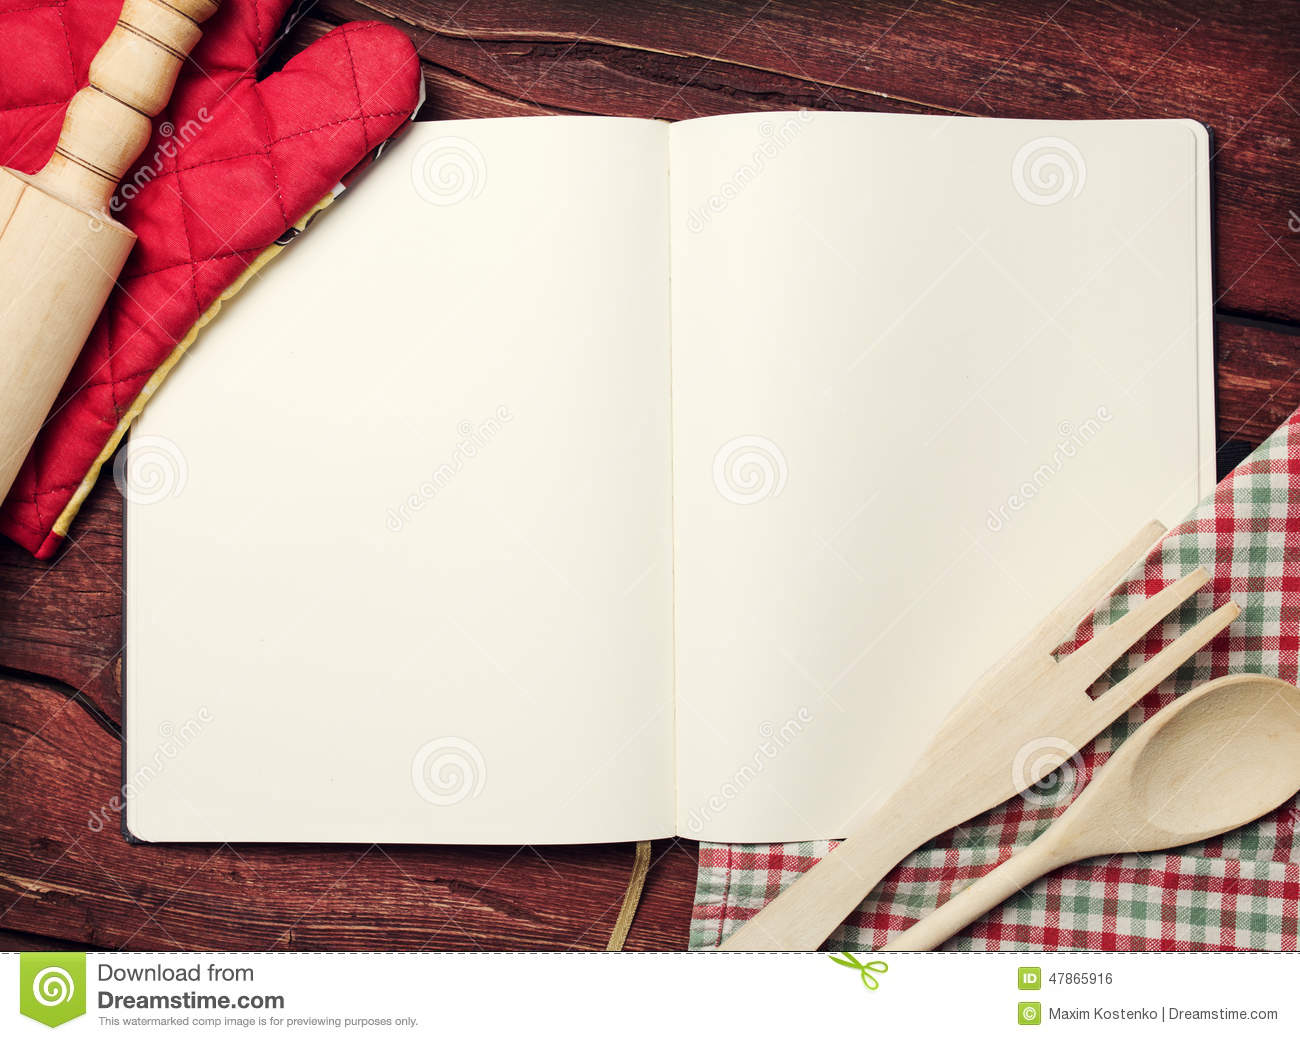 Blank recipe book on table stock photo Image of dough